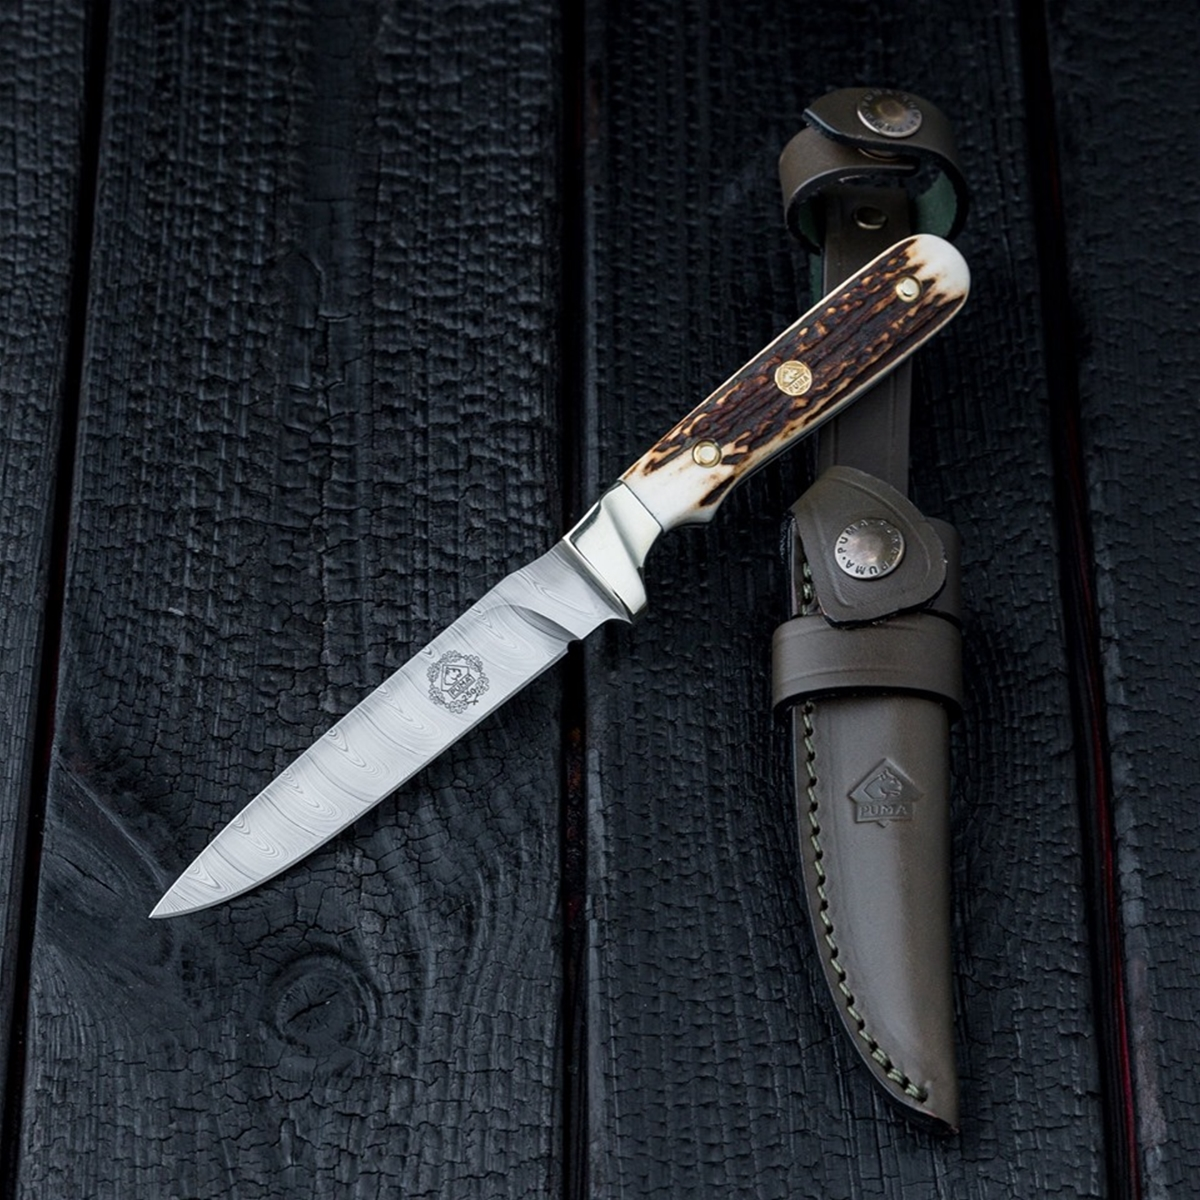 Puma Knives 250 Year Anniversary Stag Damascus Steel German Made Hunting Knife with Leather Sheath